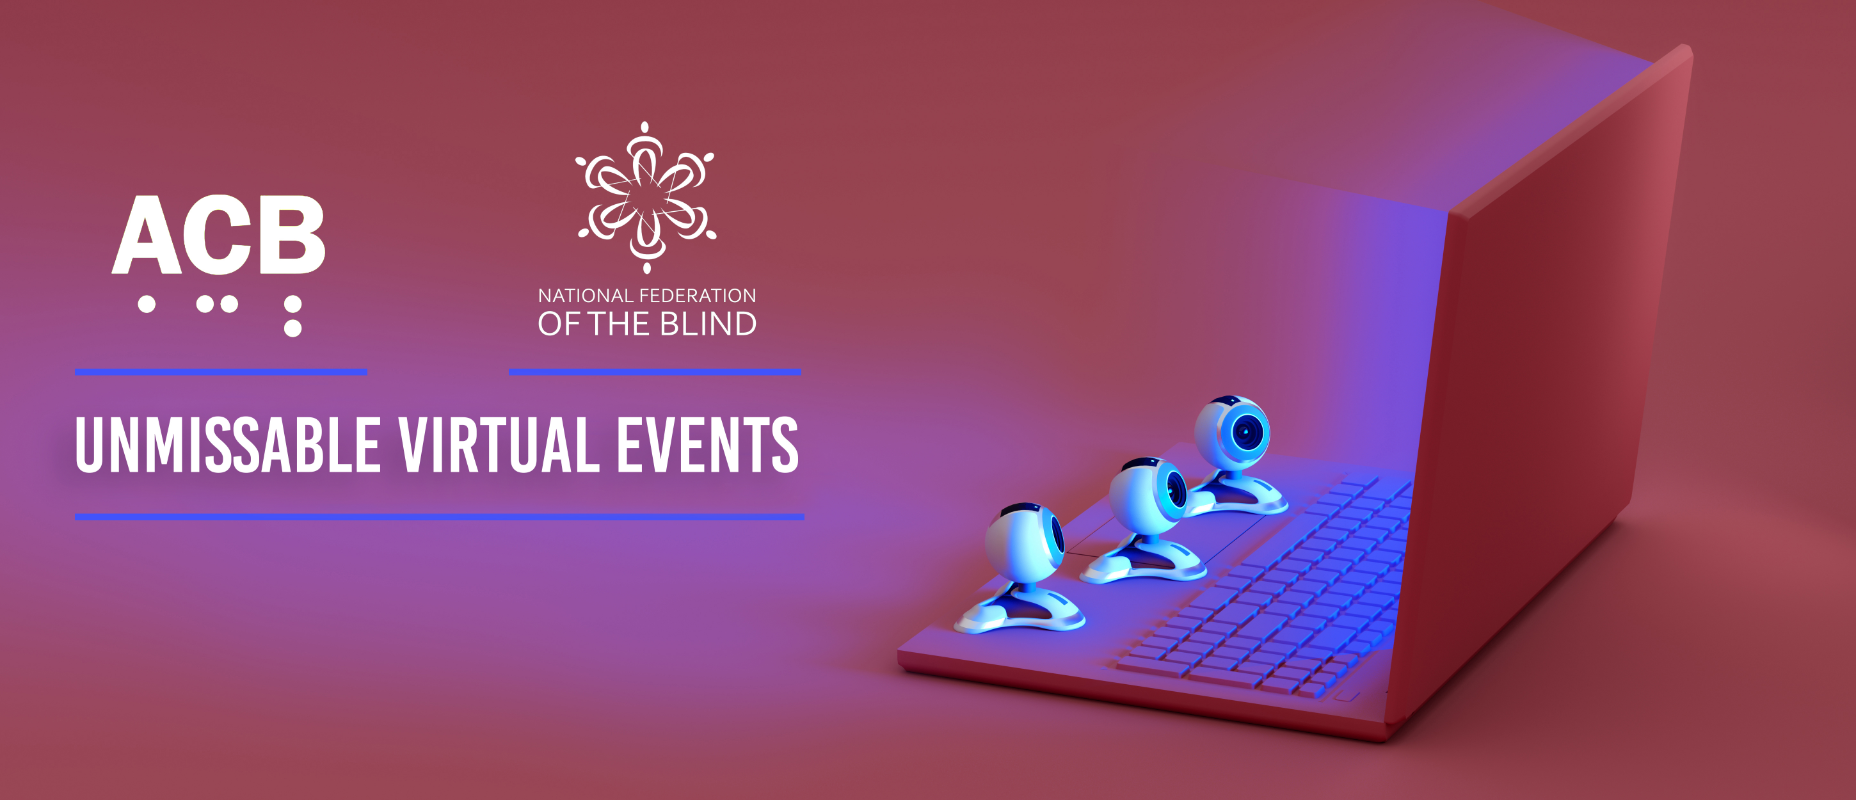 A laptop, the logos of ACB and NFB and the words Unmissable virtual events.